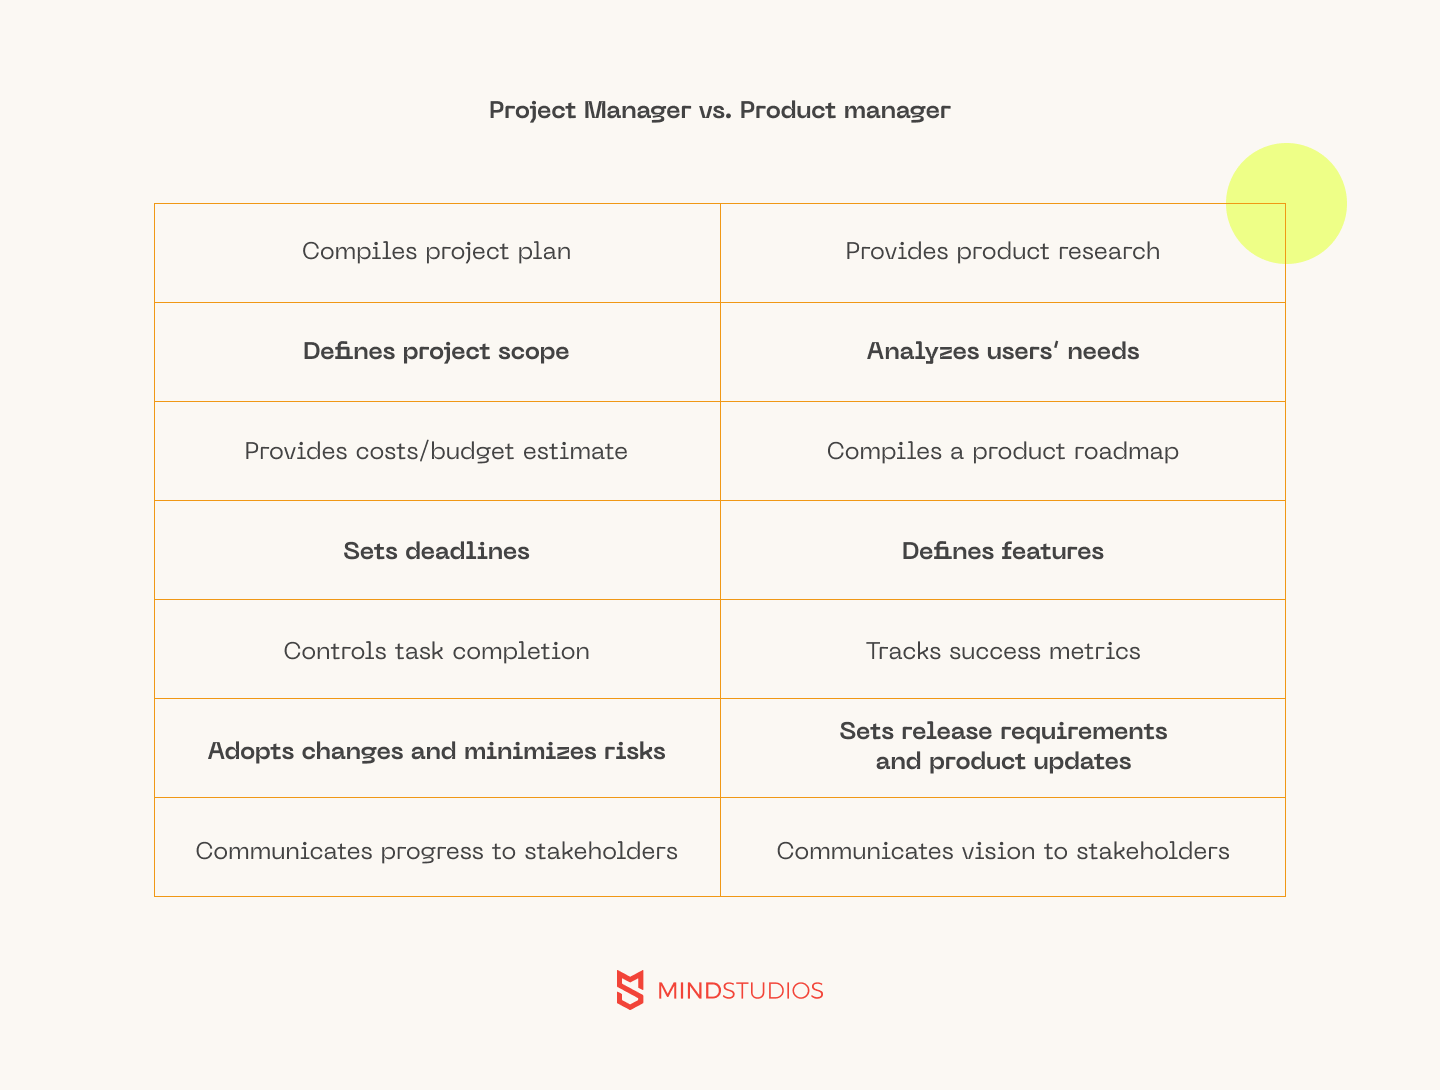 Project Manager vs Product-manager